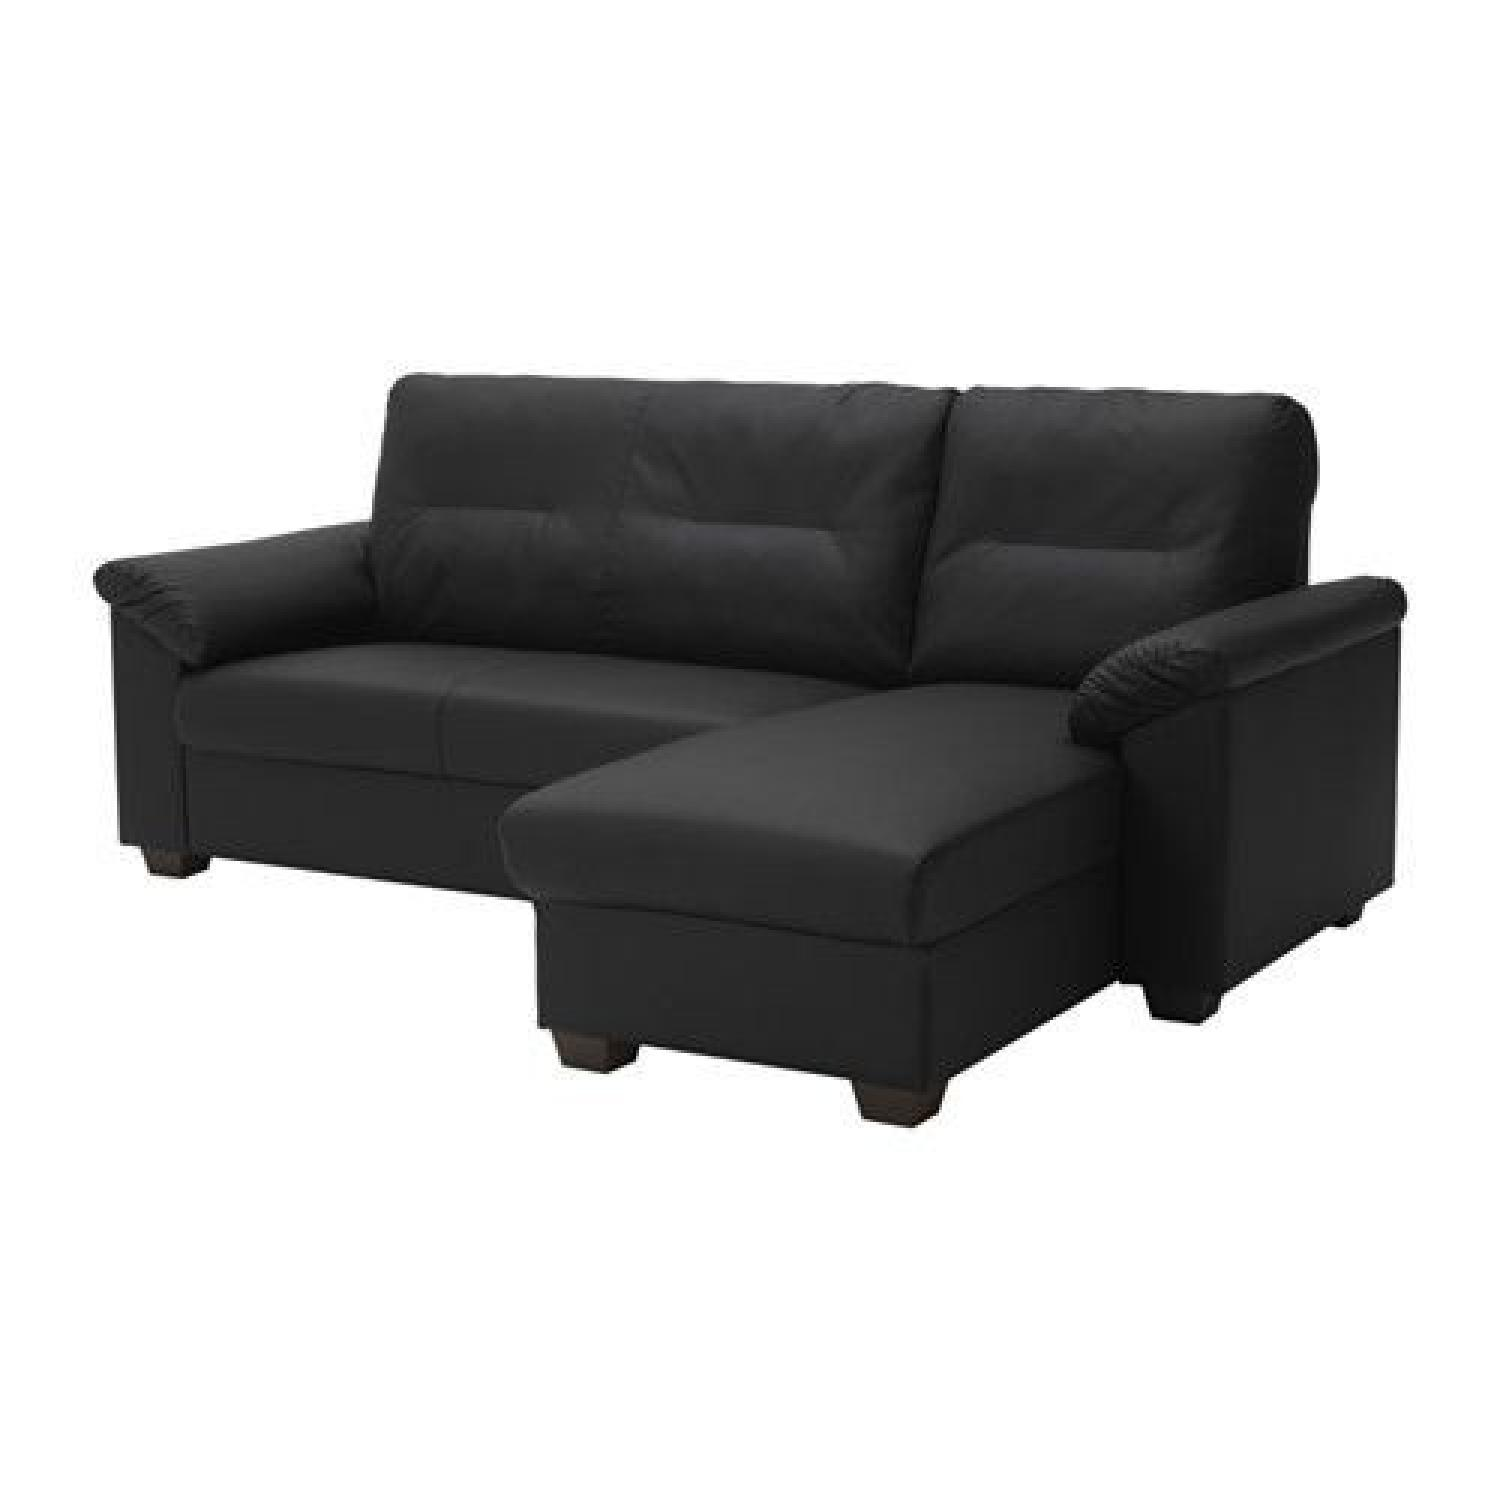 sofa the as clean of cover lovely cool review to it com removable keep is articles unique photos clubanfi ikea with and chaise ektorp couch easy tag sectional